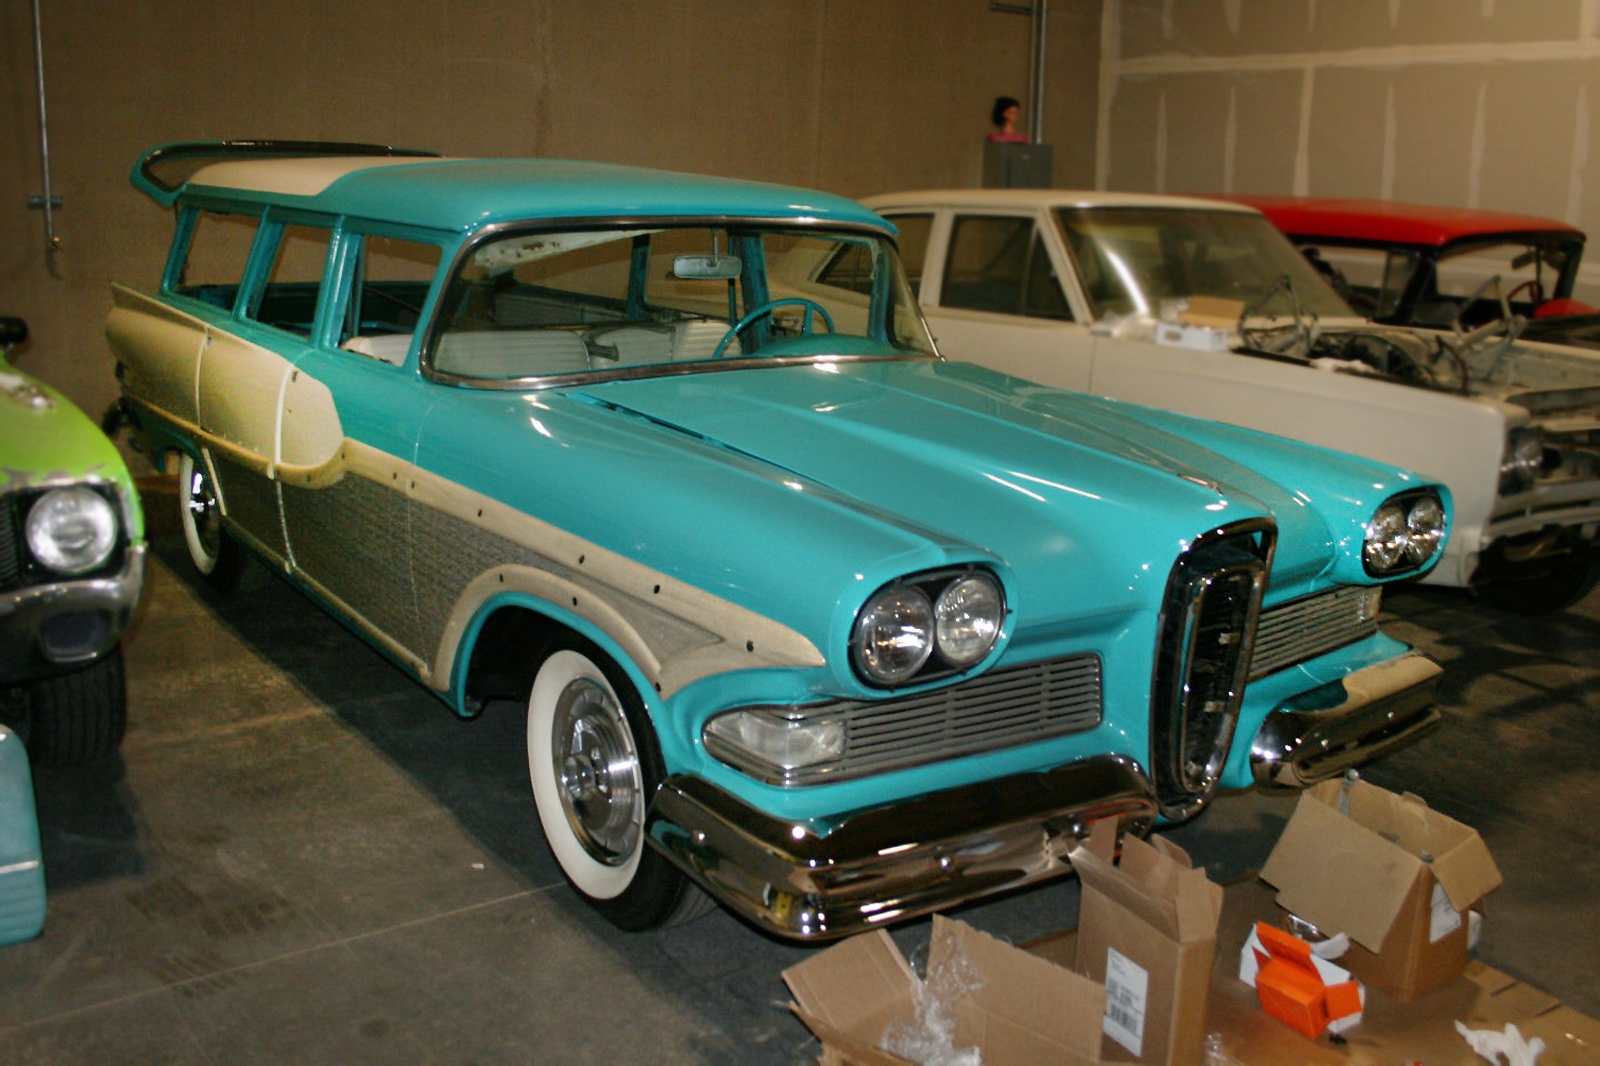 You can t beat that this gentleman has impeccable taste in unusual vehicles the edsel bermuda was only sold in 1958 and it was